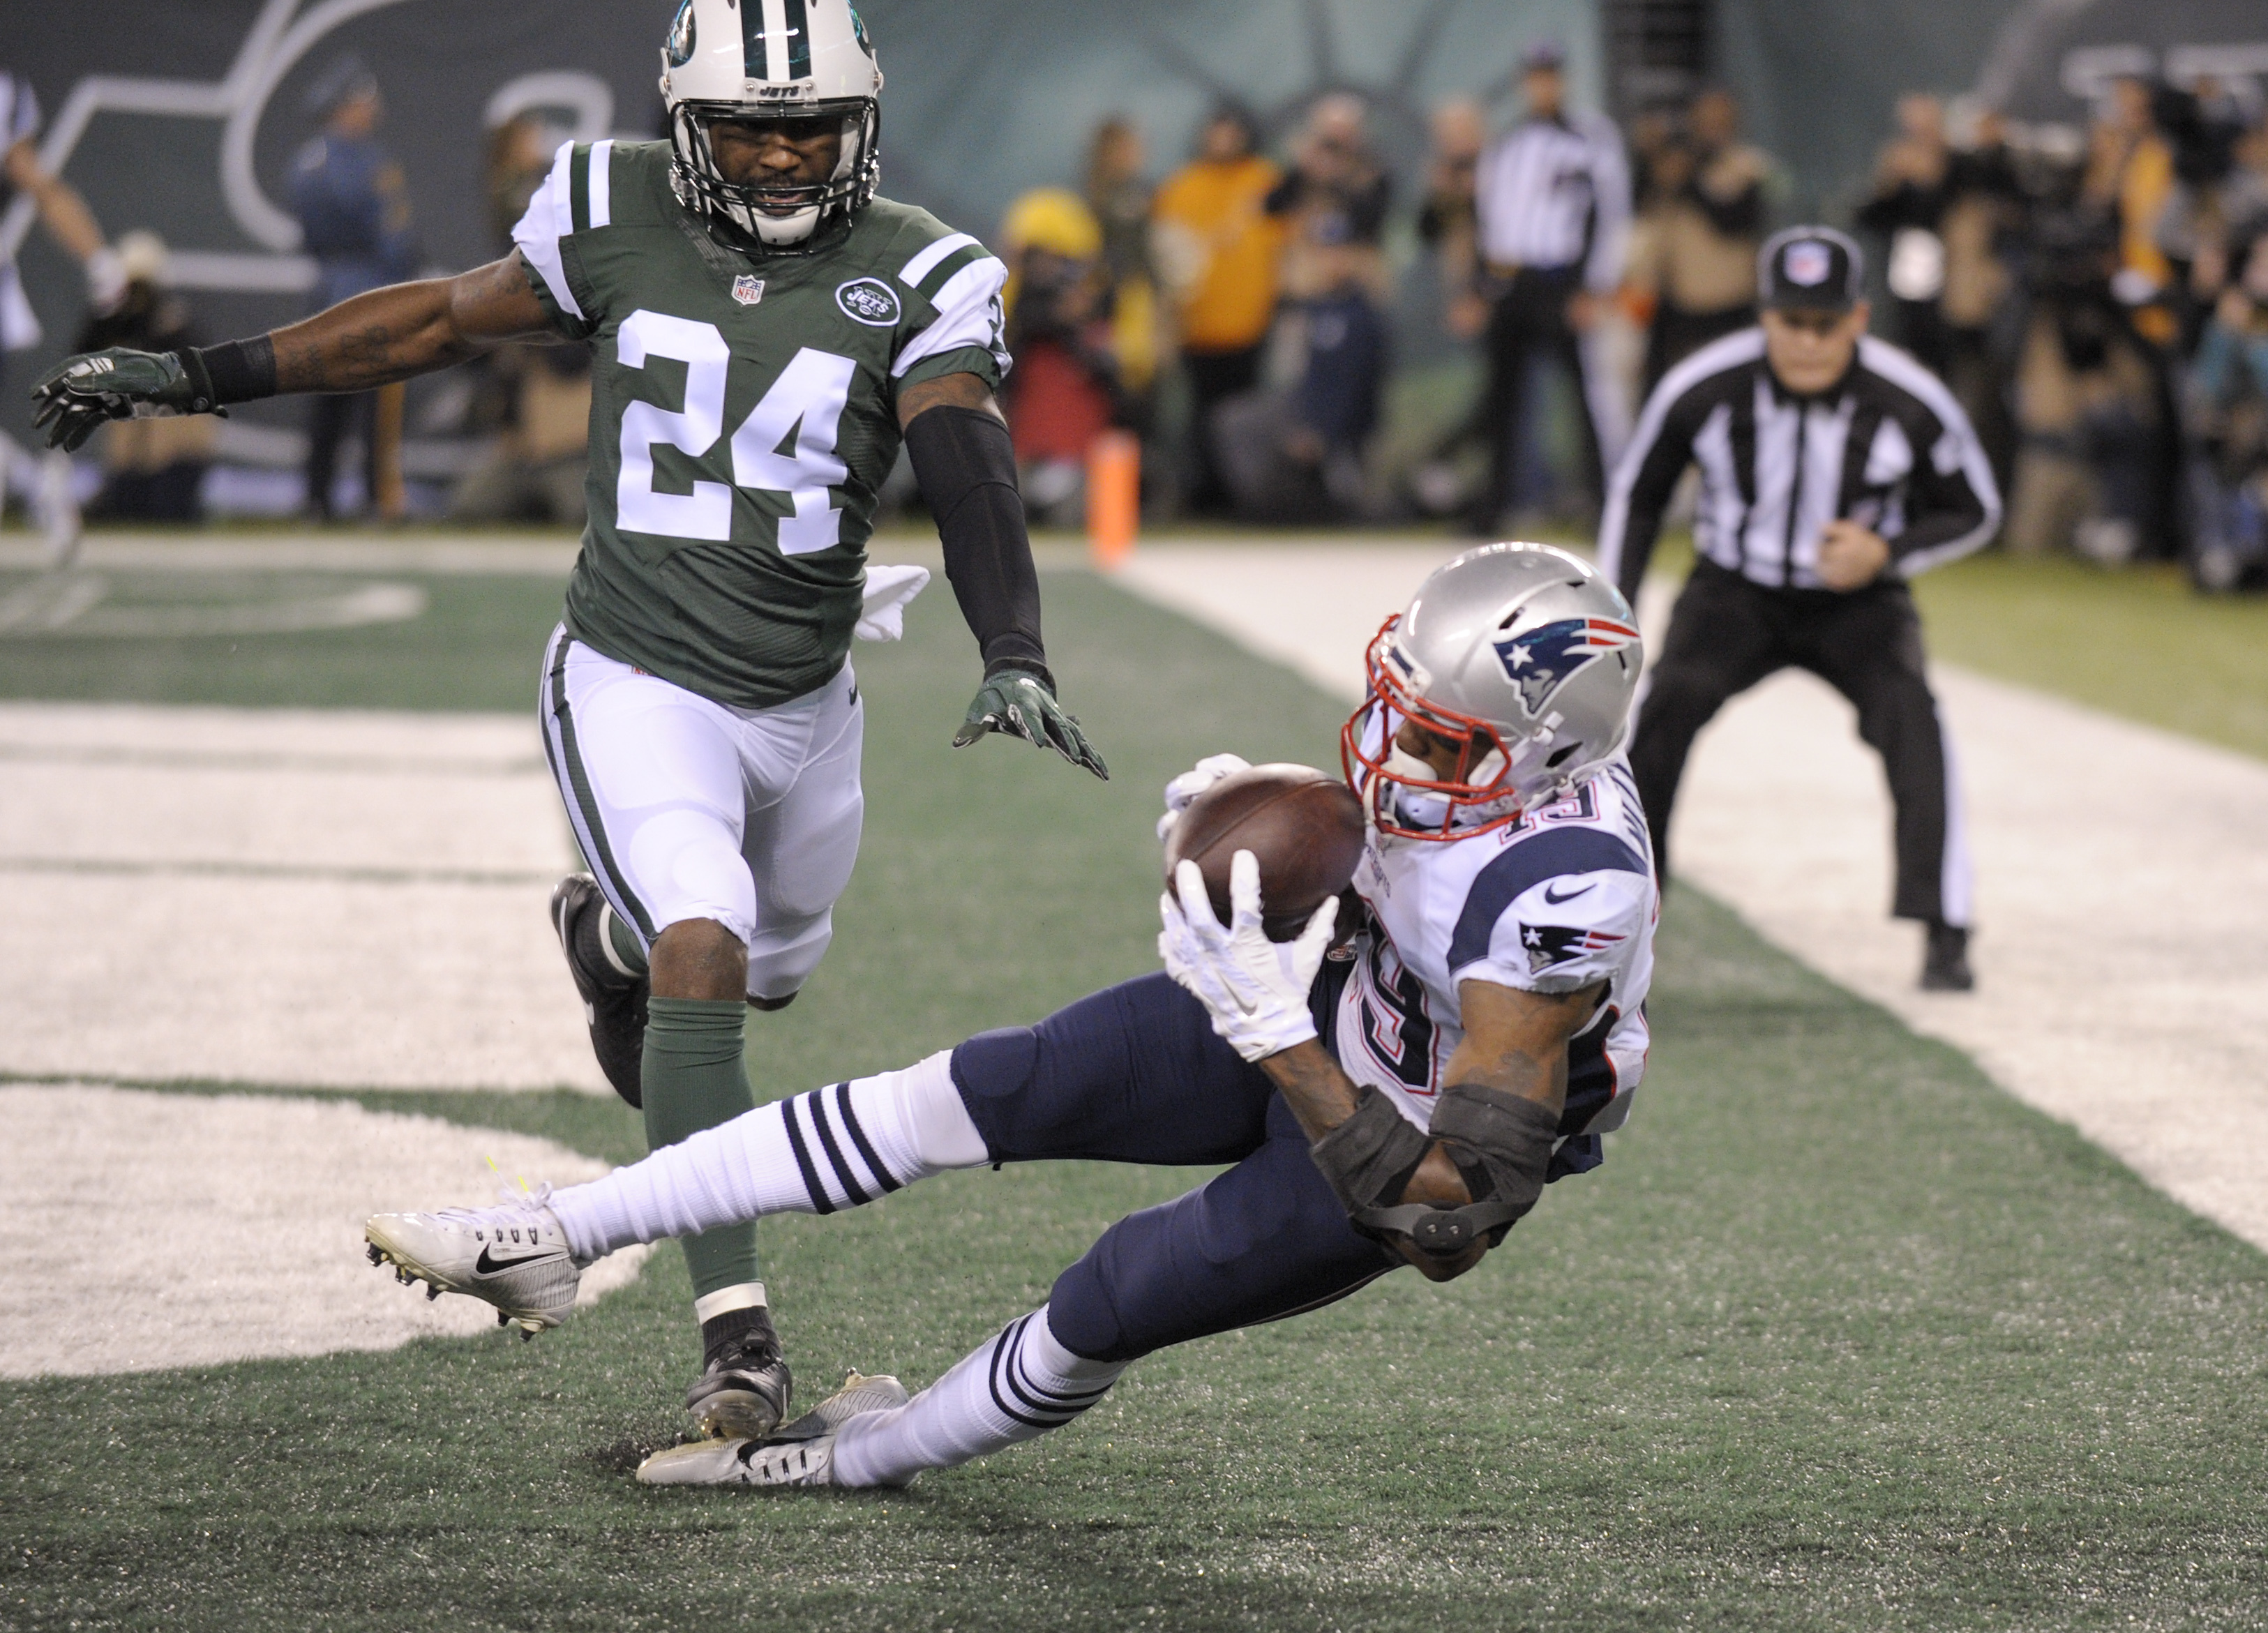 New England Patriots wide receiver Malcolm Mitchell (19) comes down with a touchdown catch in front of New York Jets cornerback Darrelle Revis (24) during the second quarter of an NFL football game, Sunday, Nov. 27, 2016, in East Rutherford, N.J. (AP Phot